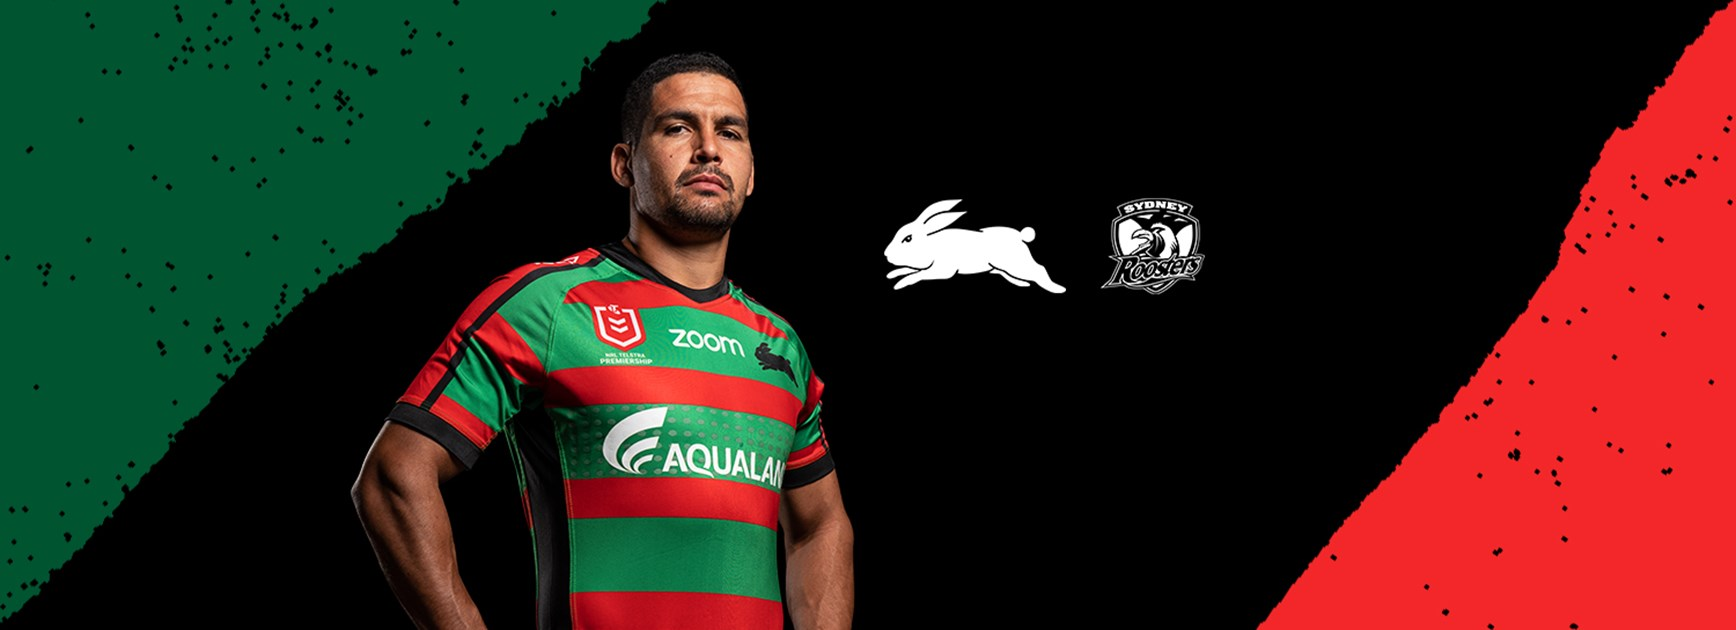 pretty nice b7da7 76cb2 Finals Week One NRL line up to play Roosters - Rabbitohs